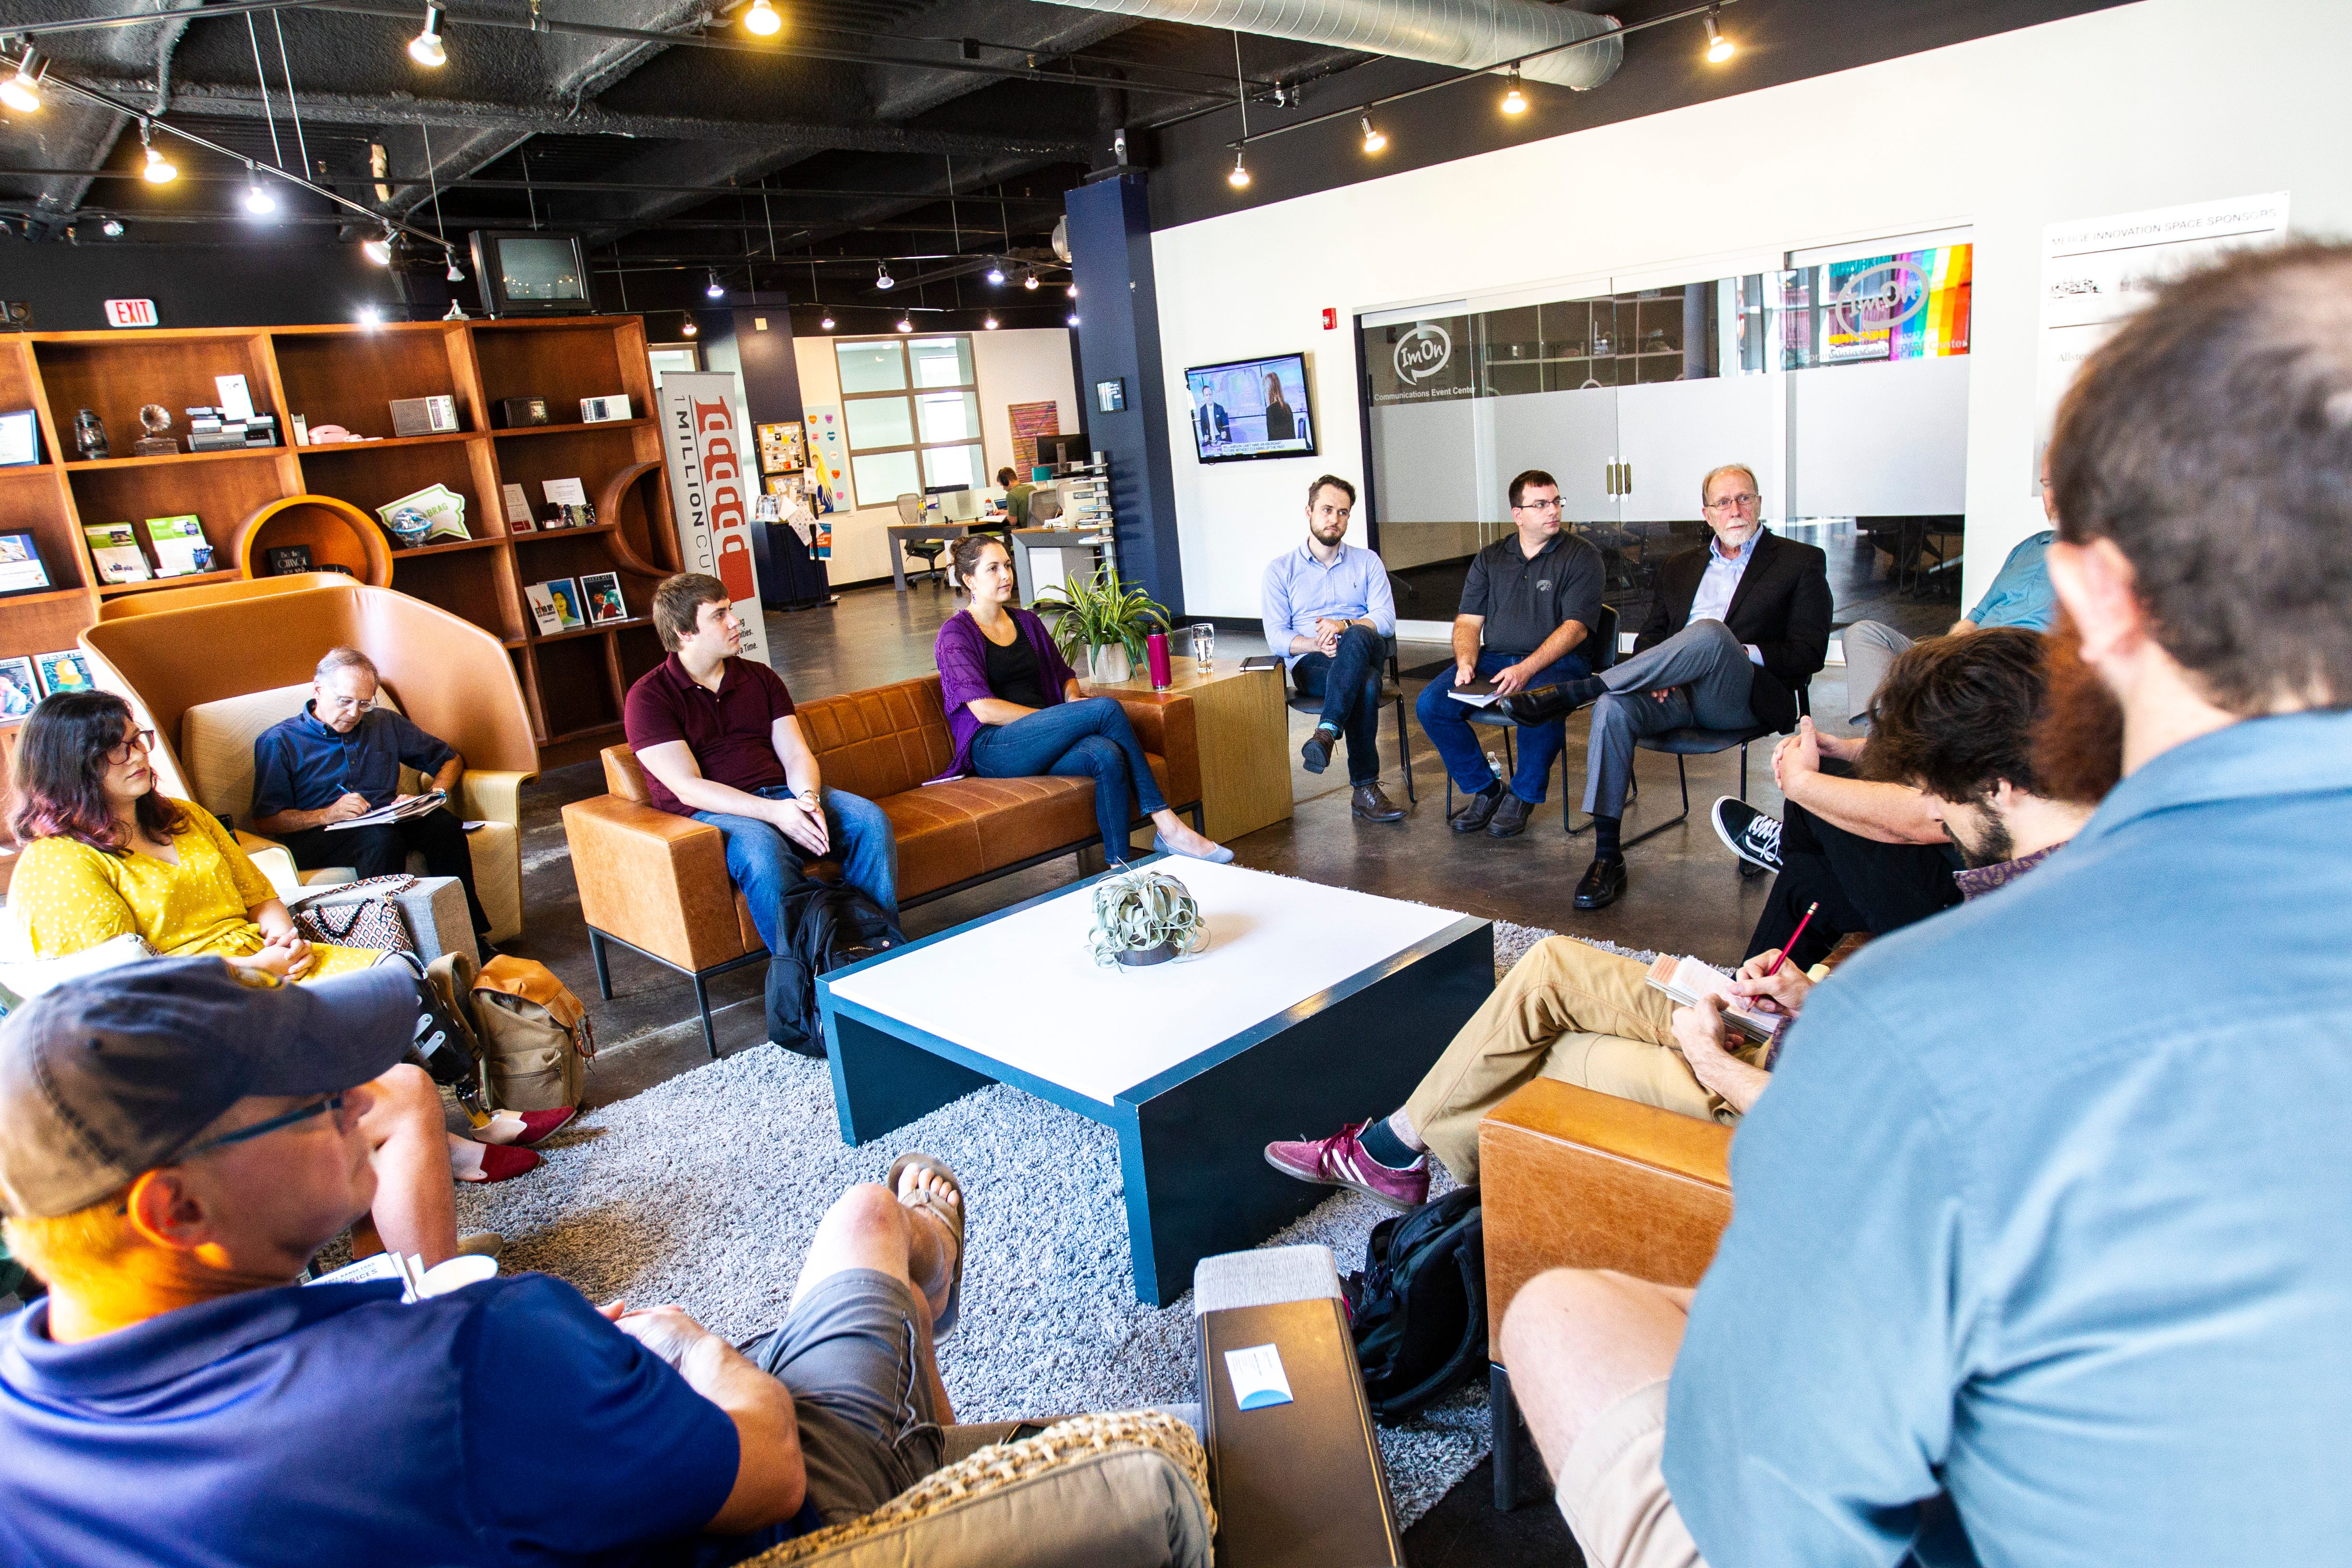 Photos: Dave Loebsack meets with entrepreneurs on Congressional Start Up Day